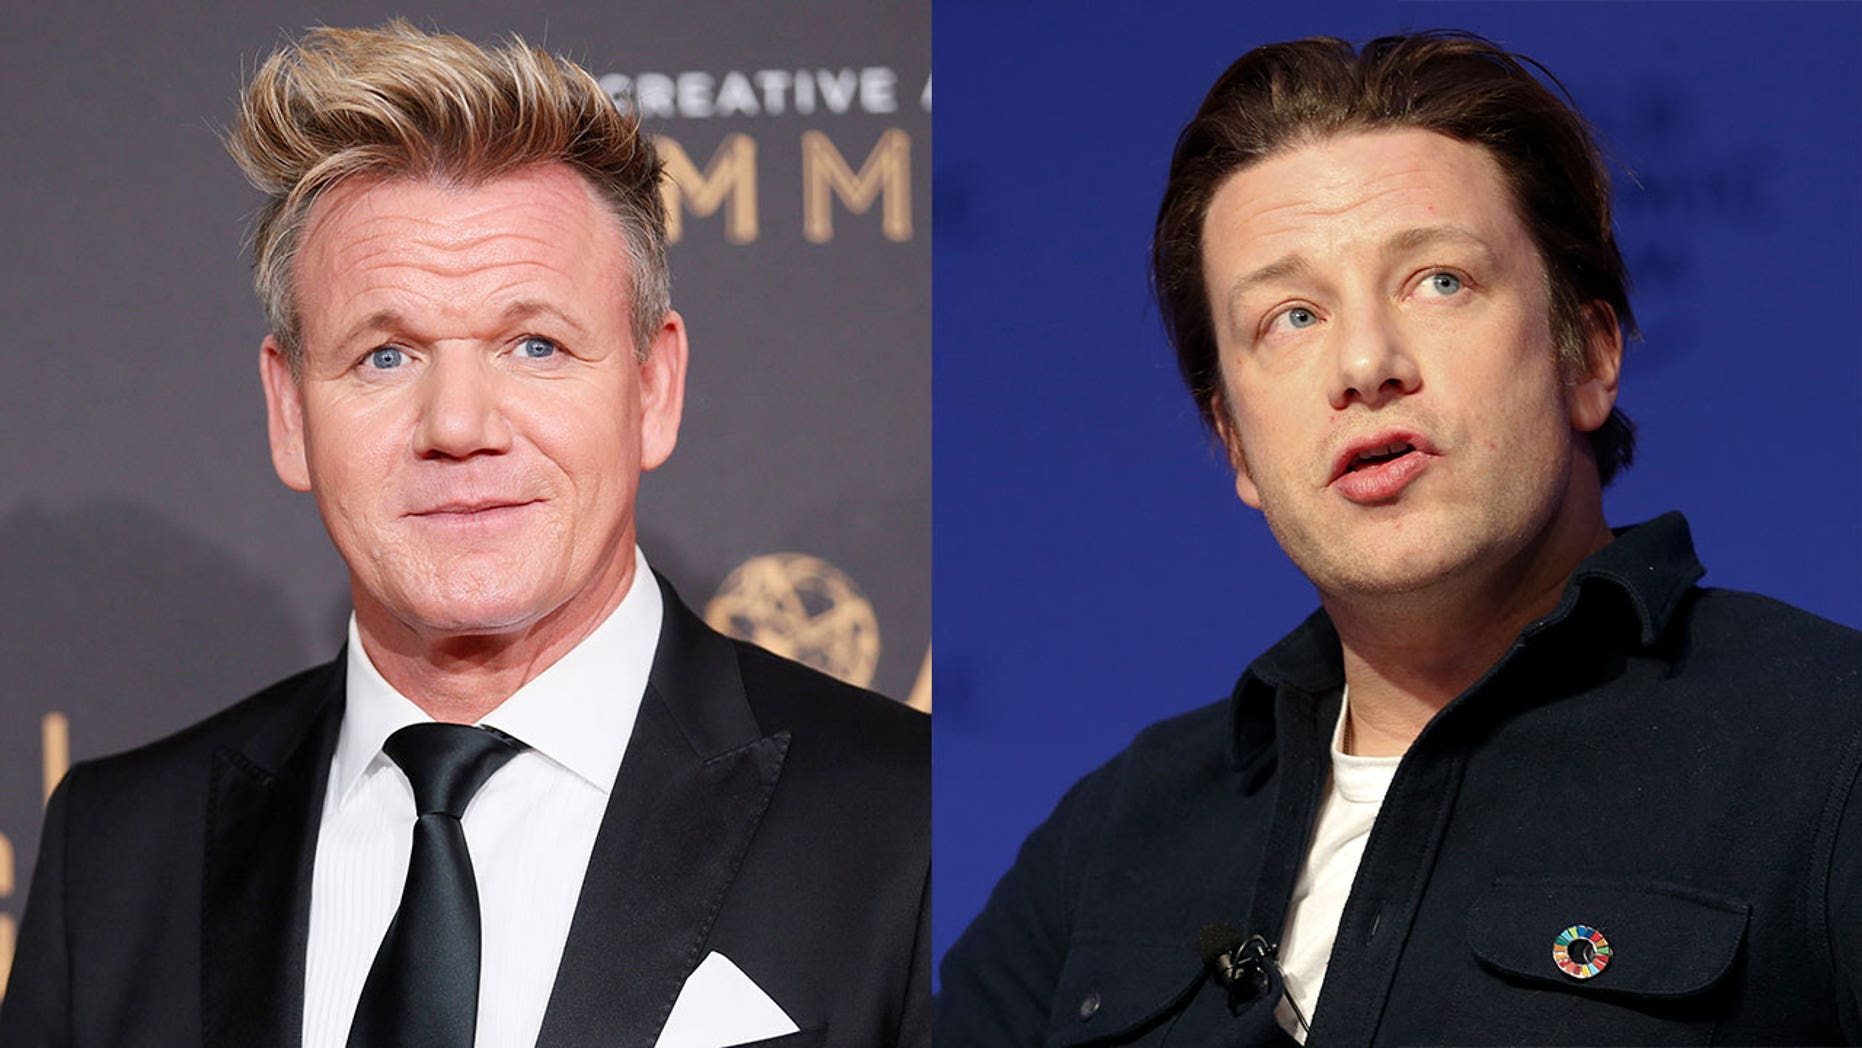 Ramsay wasn't happy with Oliver's recent remarks in The Sun.